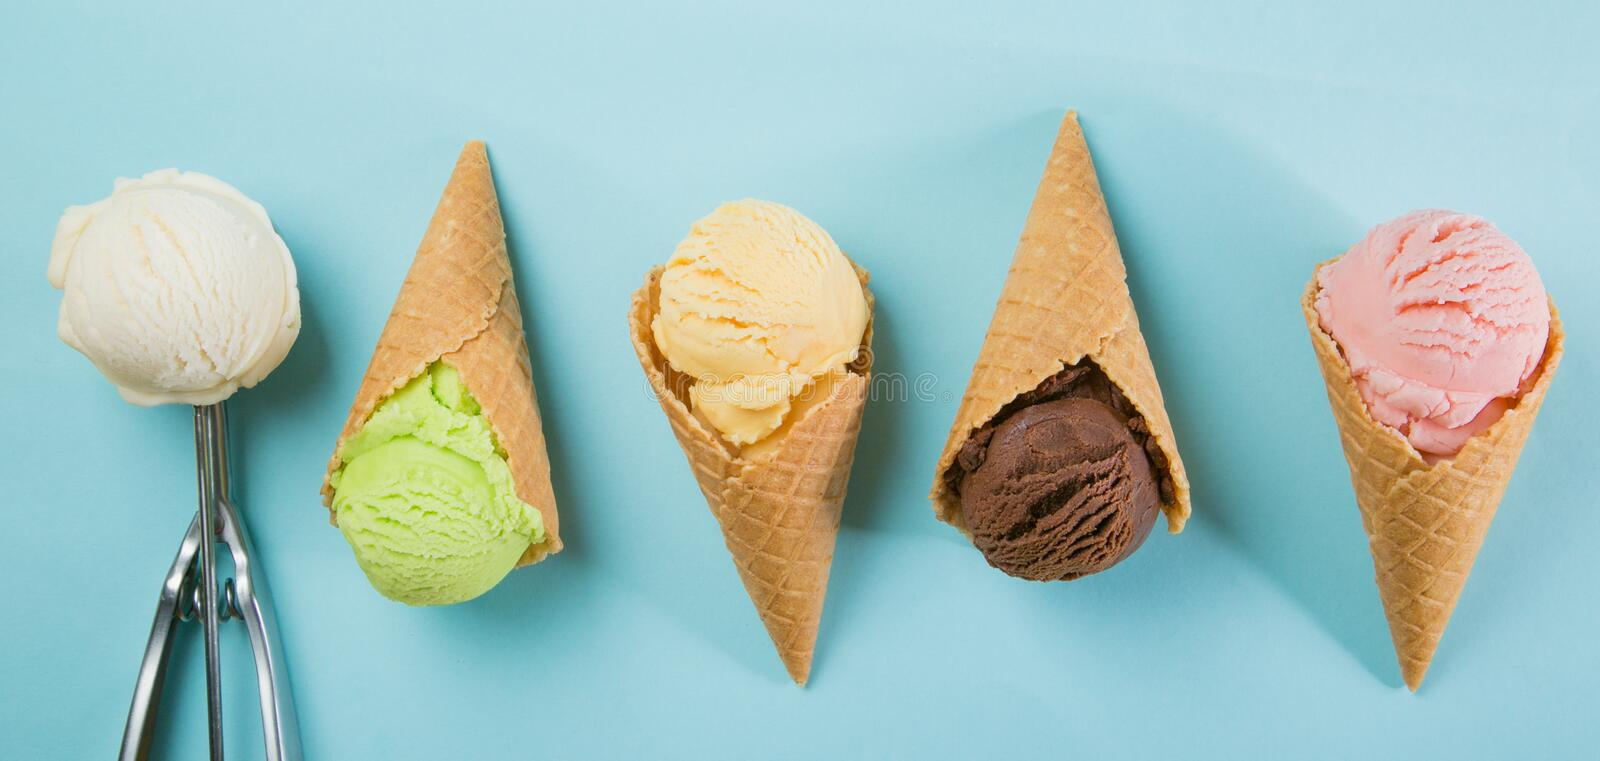 Selection of colorful ice cream scoops on blue background royalty free stock photos